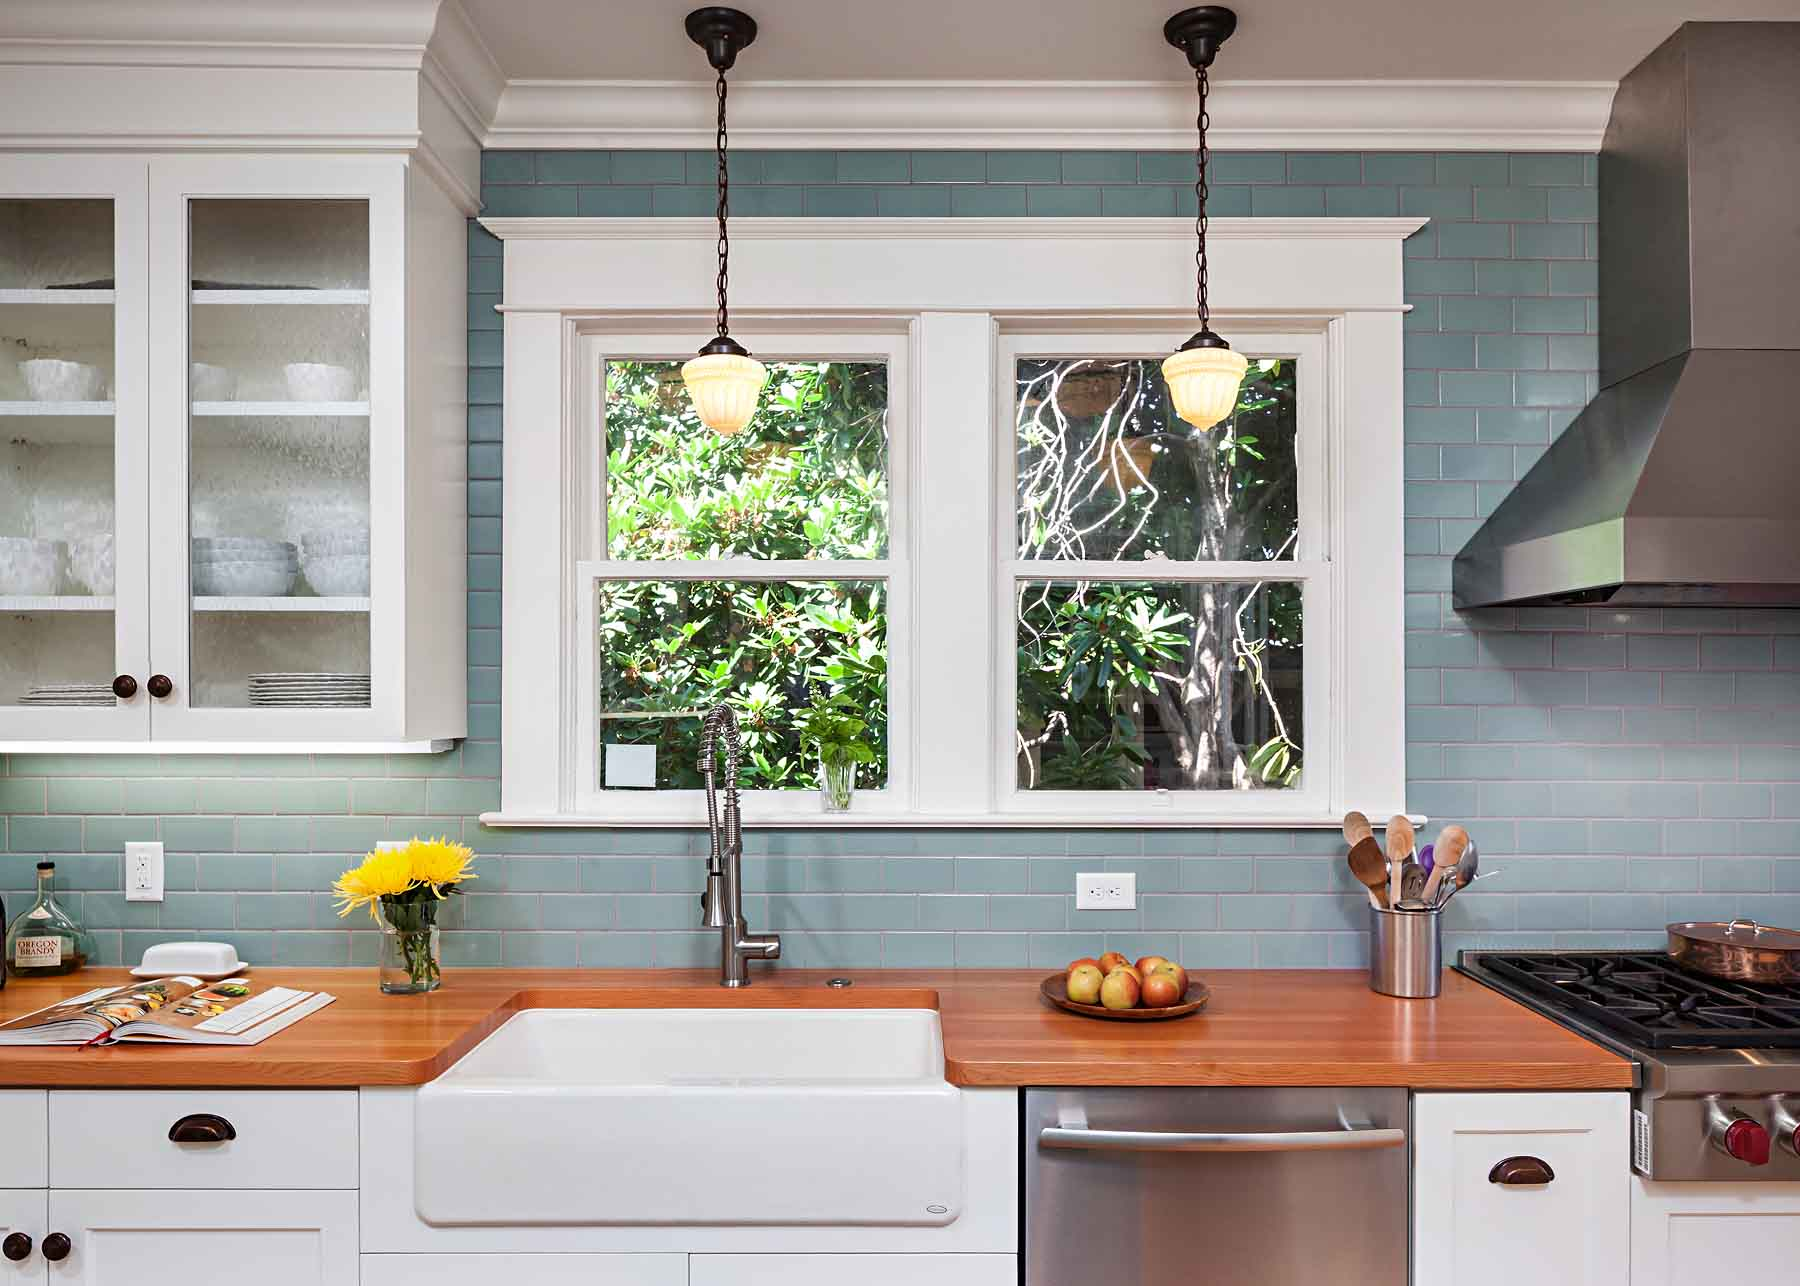 Portland Kitchen Remodel with white cabinets and trim and teal backsplash